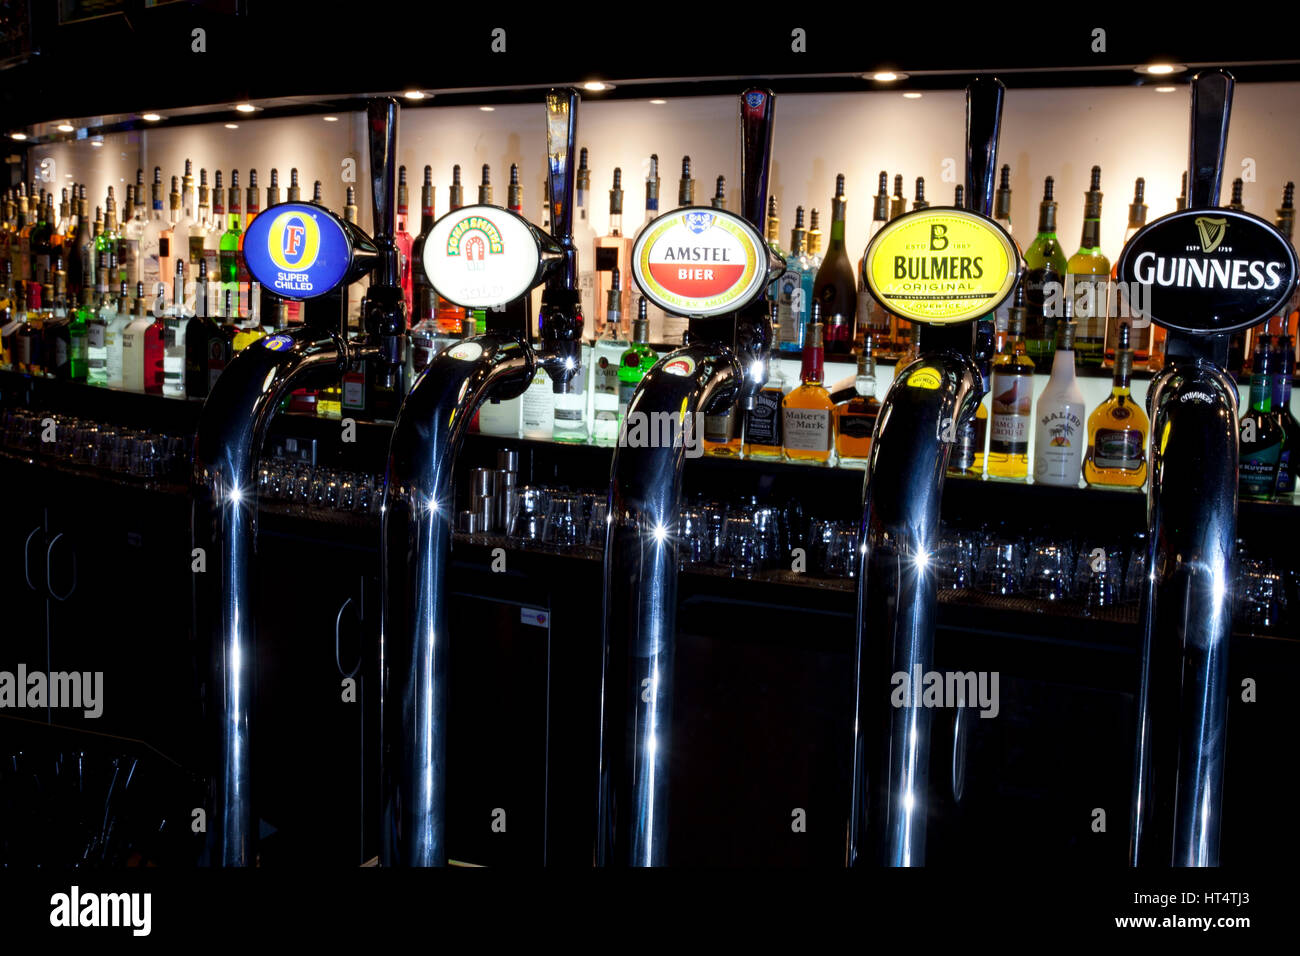 Beer taps in a bar in England - Stock Image